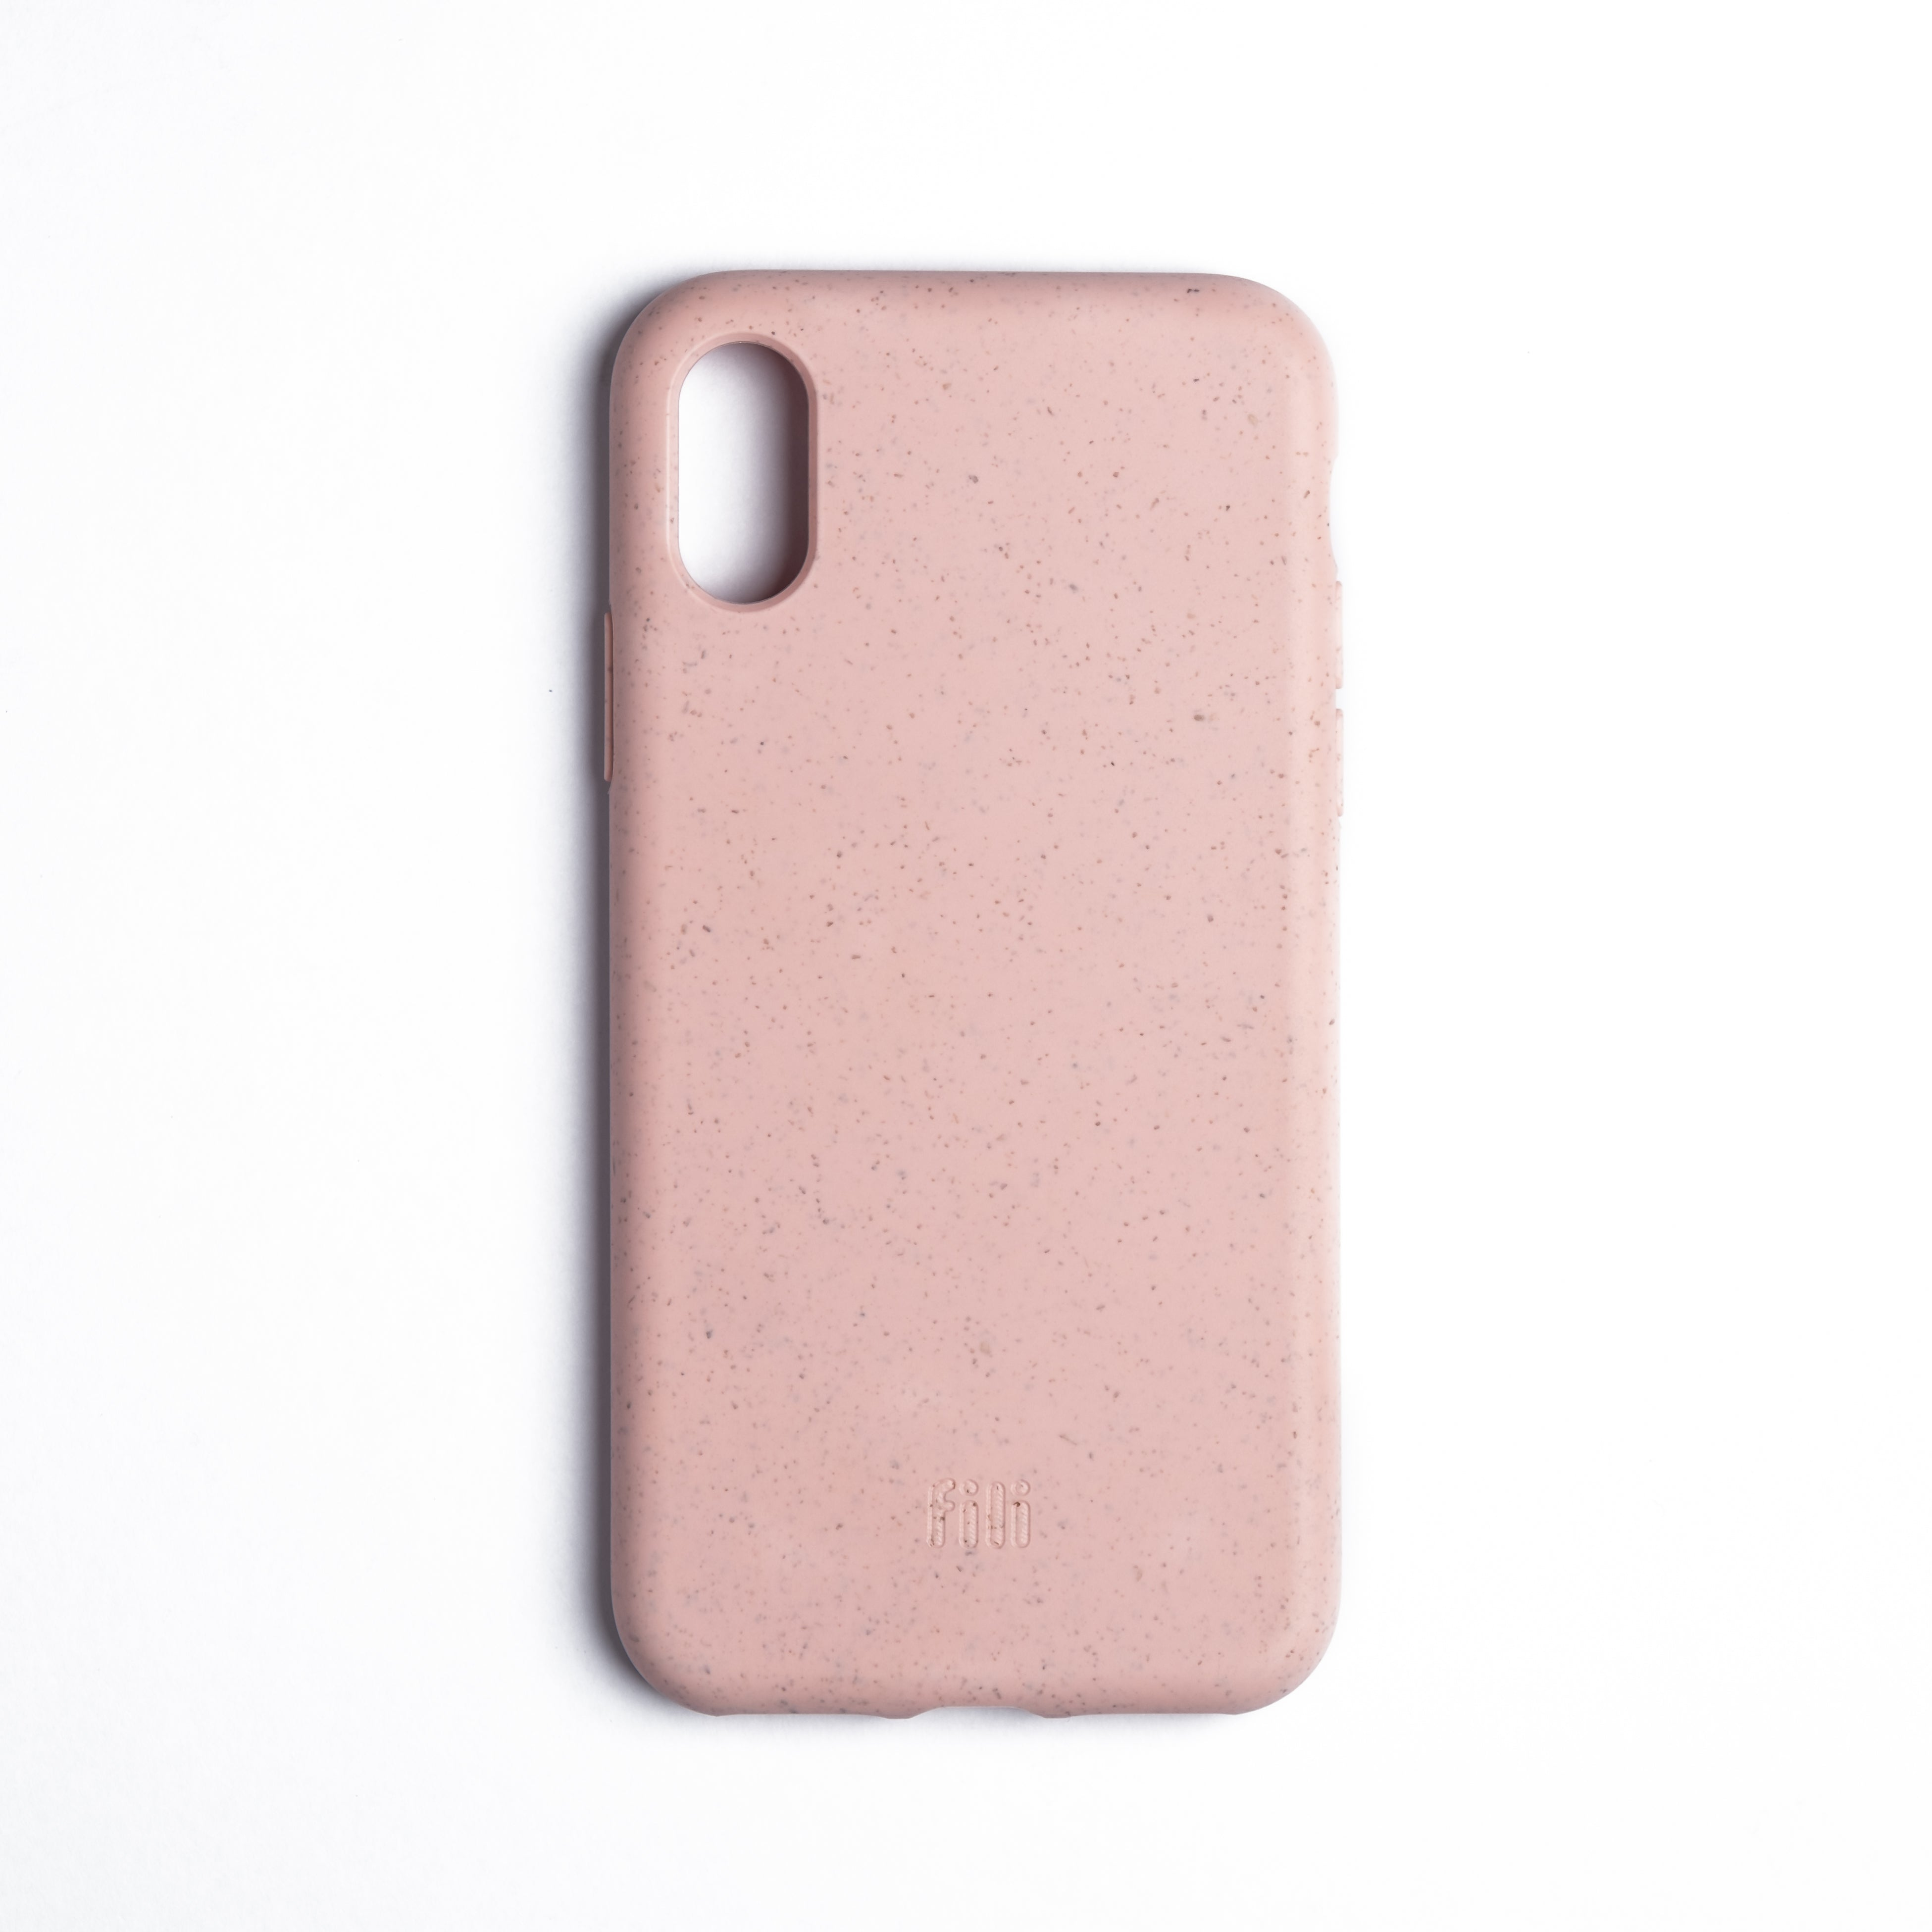 Fili Eco-Friendly iPhone X, XS Case - Fili